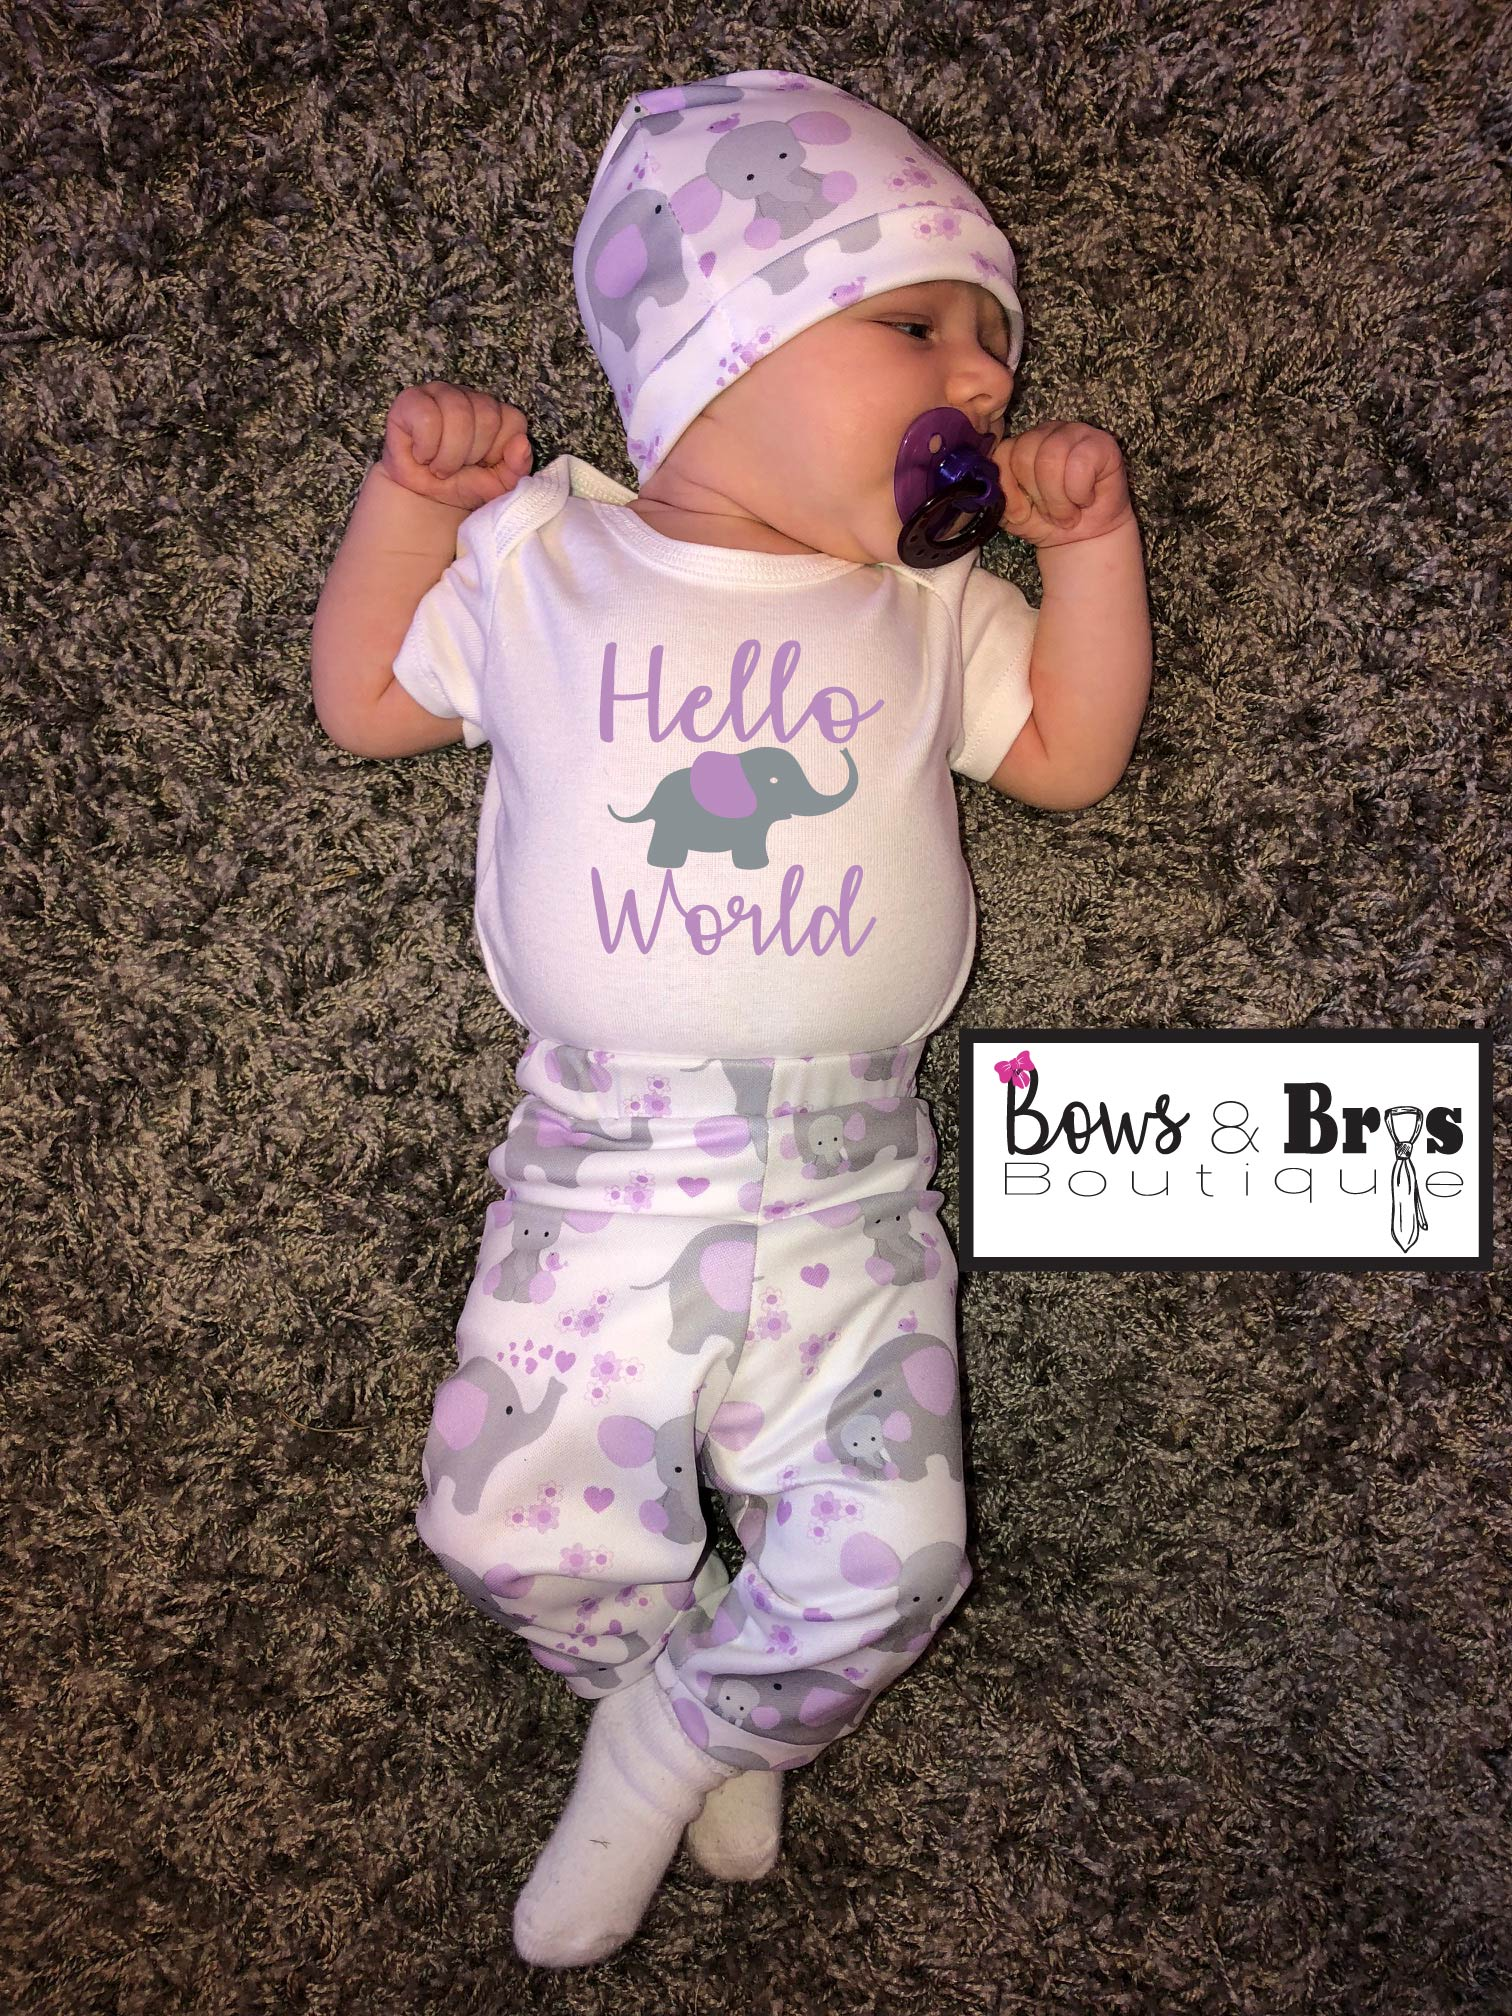 Monthly Onesie Baby Girl Outfit Set Baby Coming Home Outfit Purple Elephant Outfit Hospital Outfit Newborn Outfit Available Up To 24 Mo.